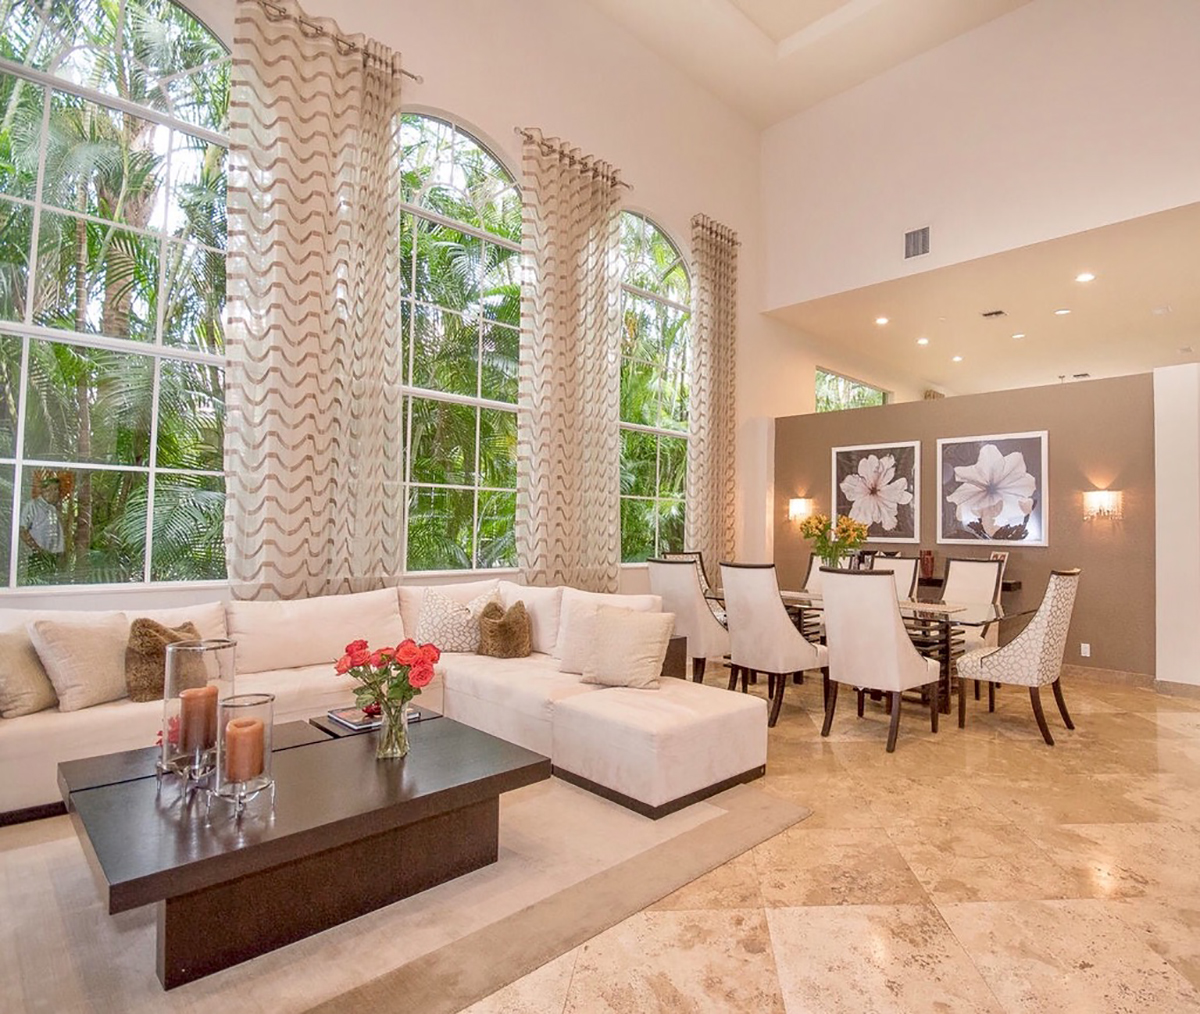 Transitional Country Club in Boca Rato, FL, Eve Joss Interior Decorator, Rooms by Eve6.jpg